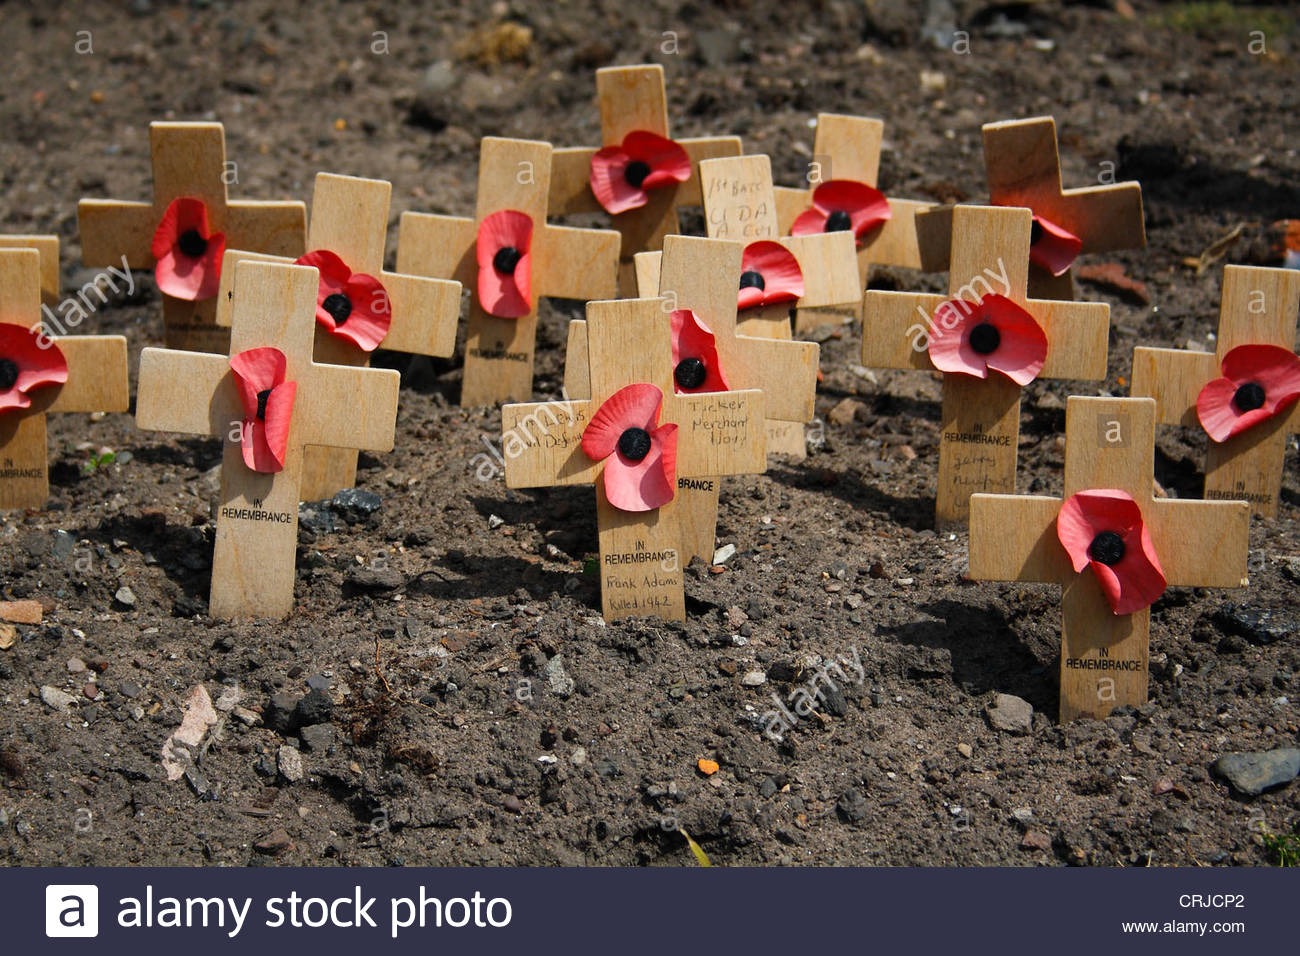 Remembrance day, Crosses with poppies, at St. Nicholas Church, Liverpool, Merseyside, England, seaman´s church. - Stock Image